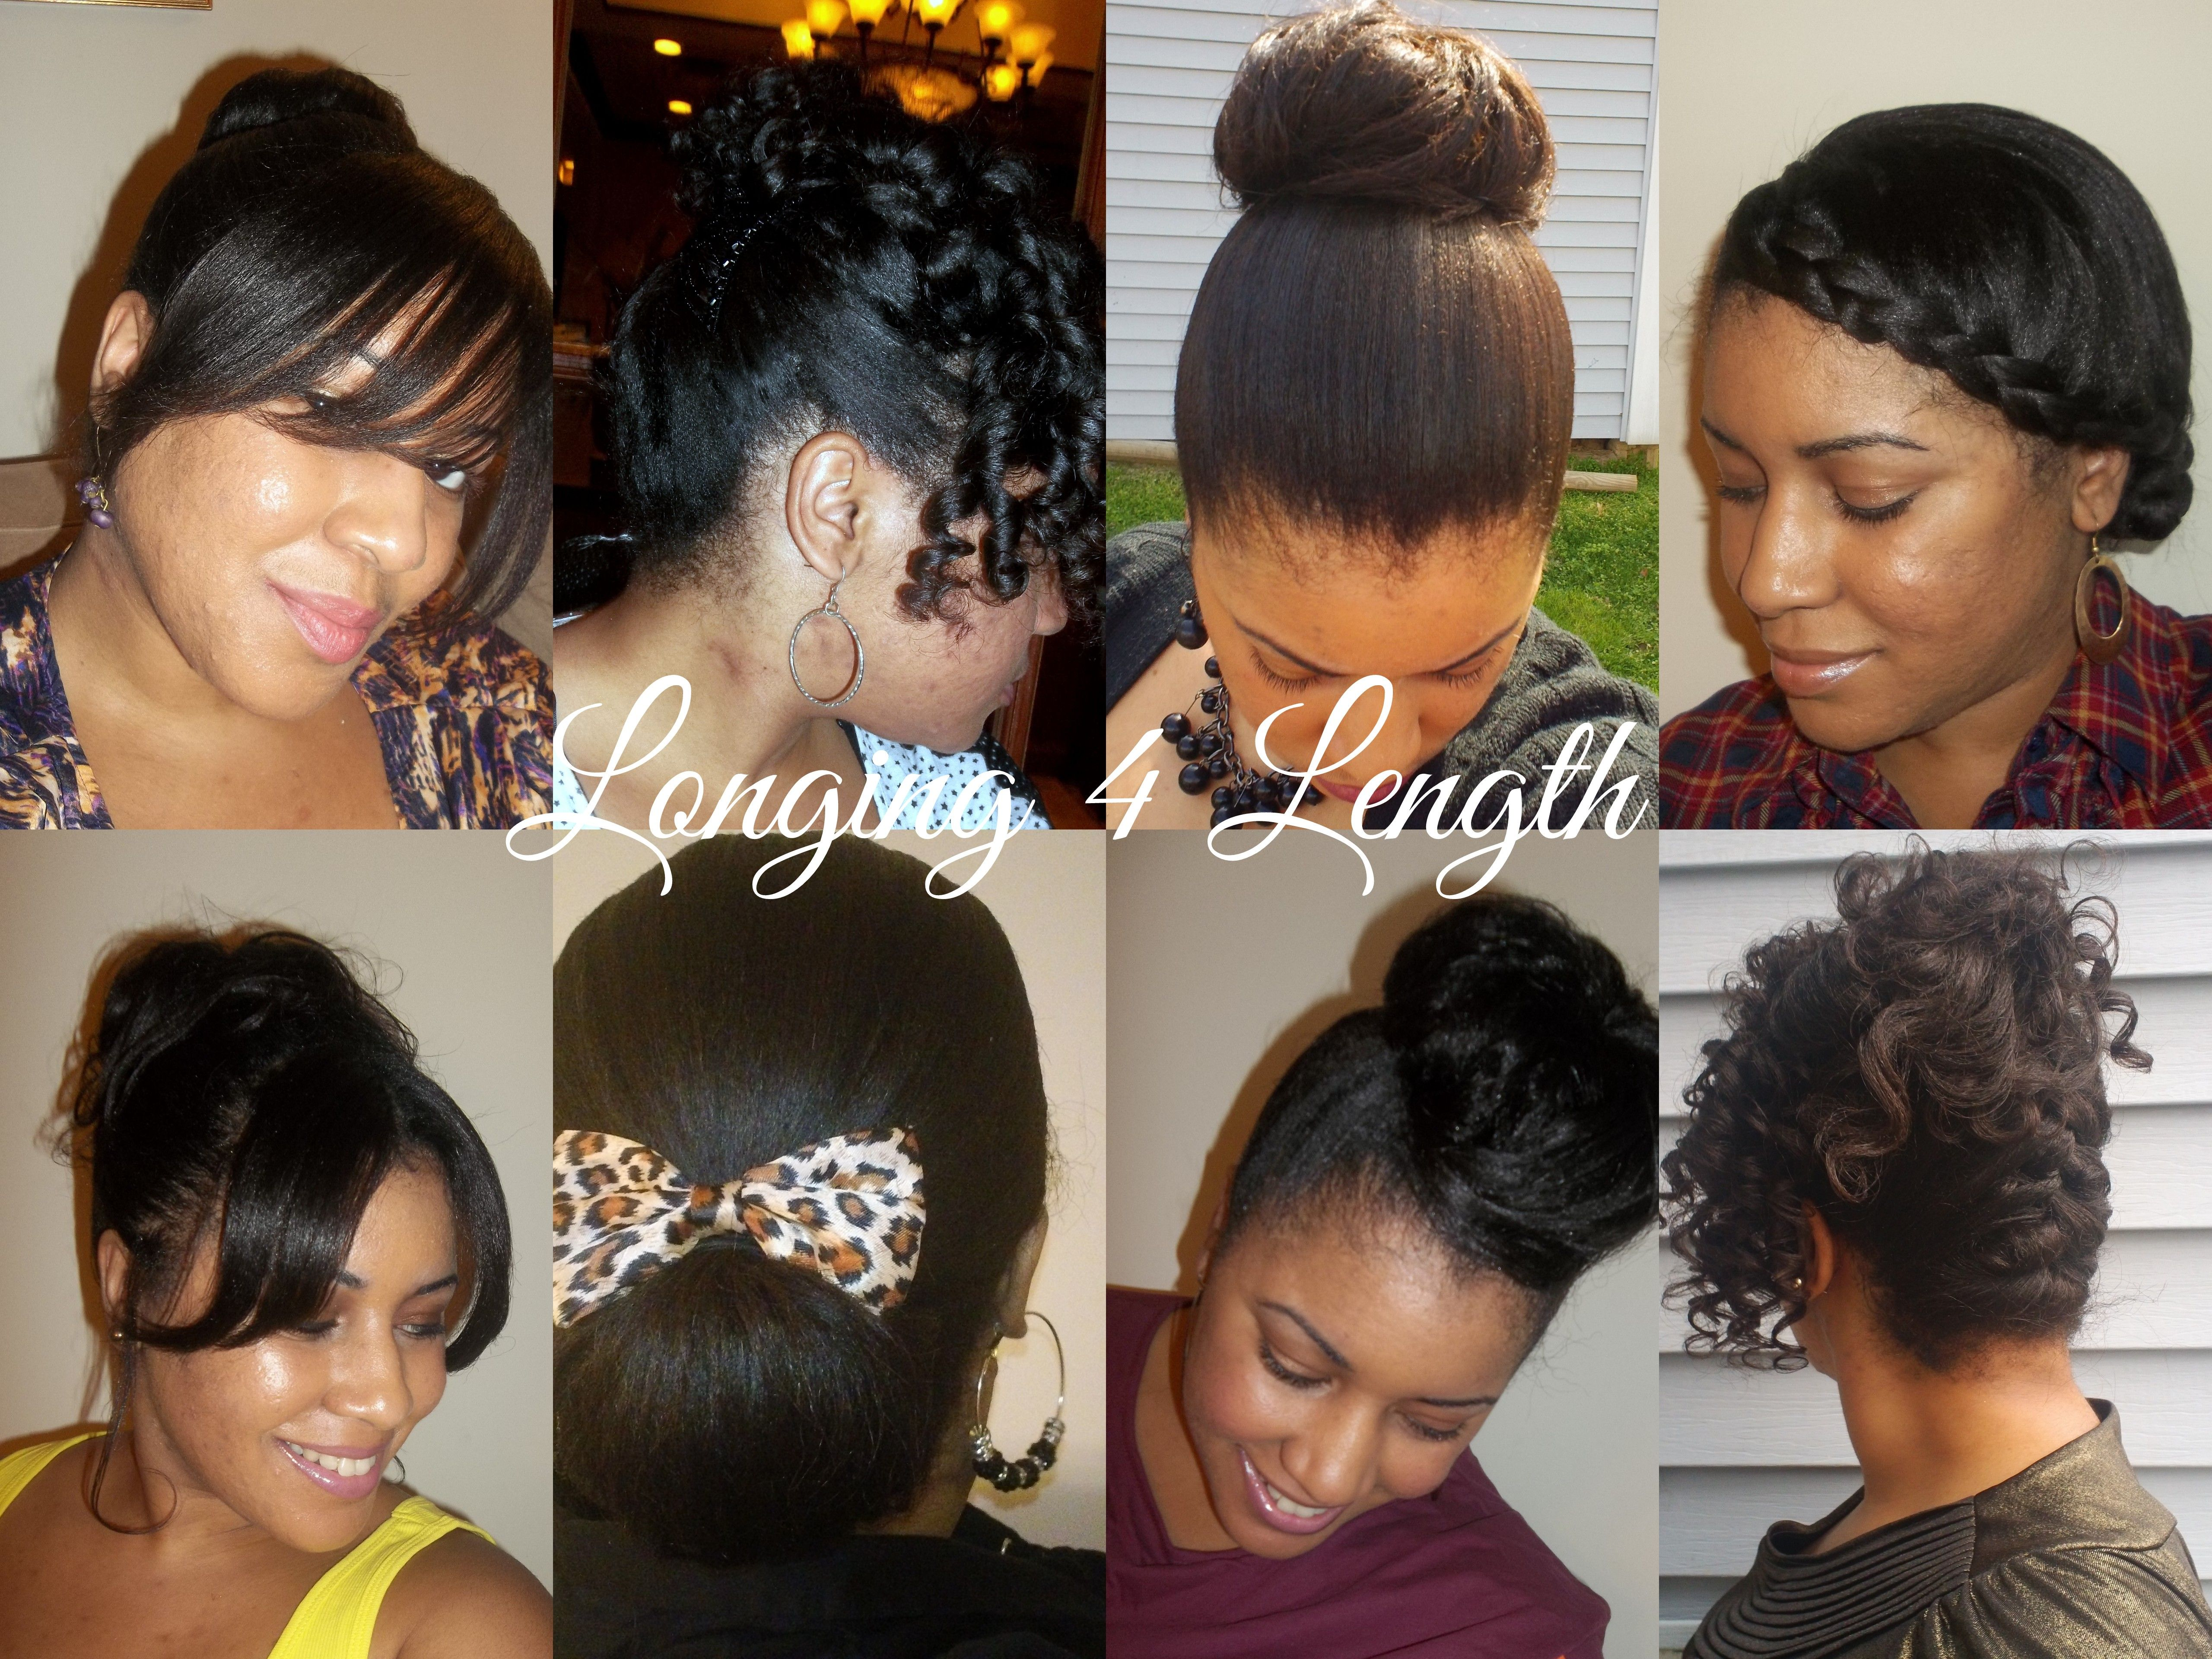 Tremendous 1000 Images About Protective Hair Styles On Pinterest Relaxed Hairstyles For Women Draintrainus